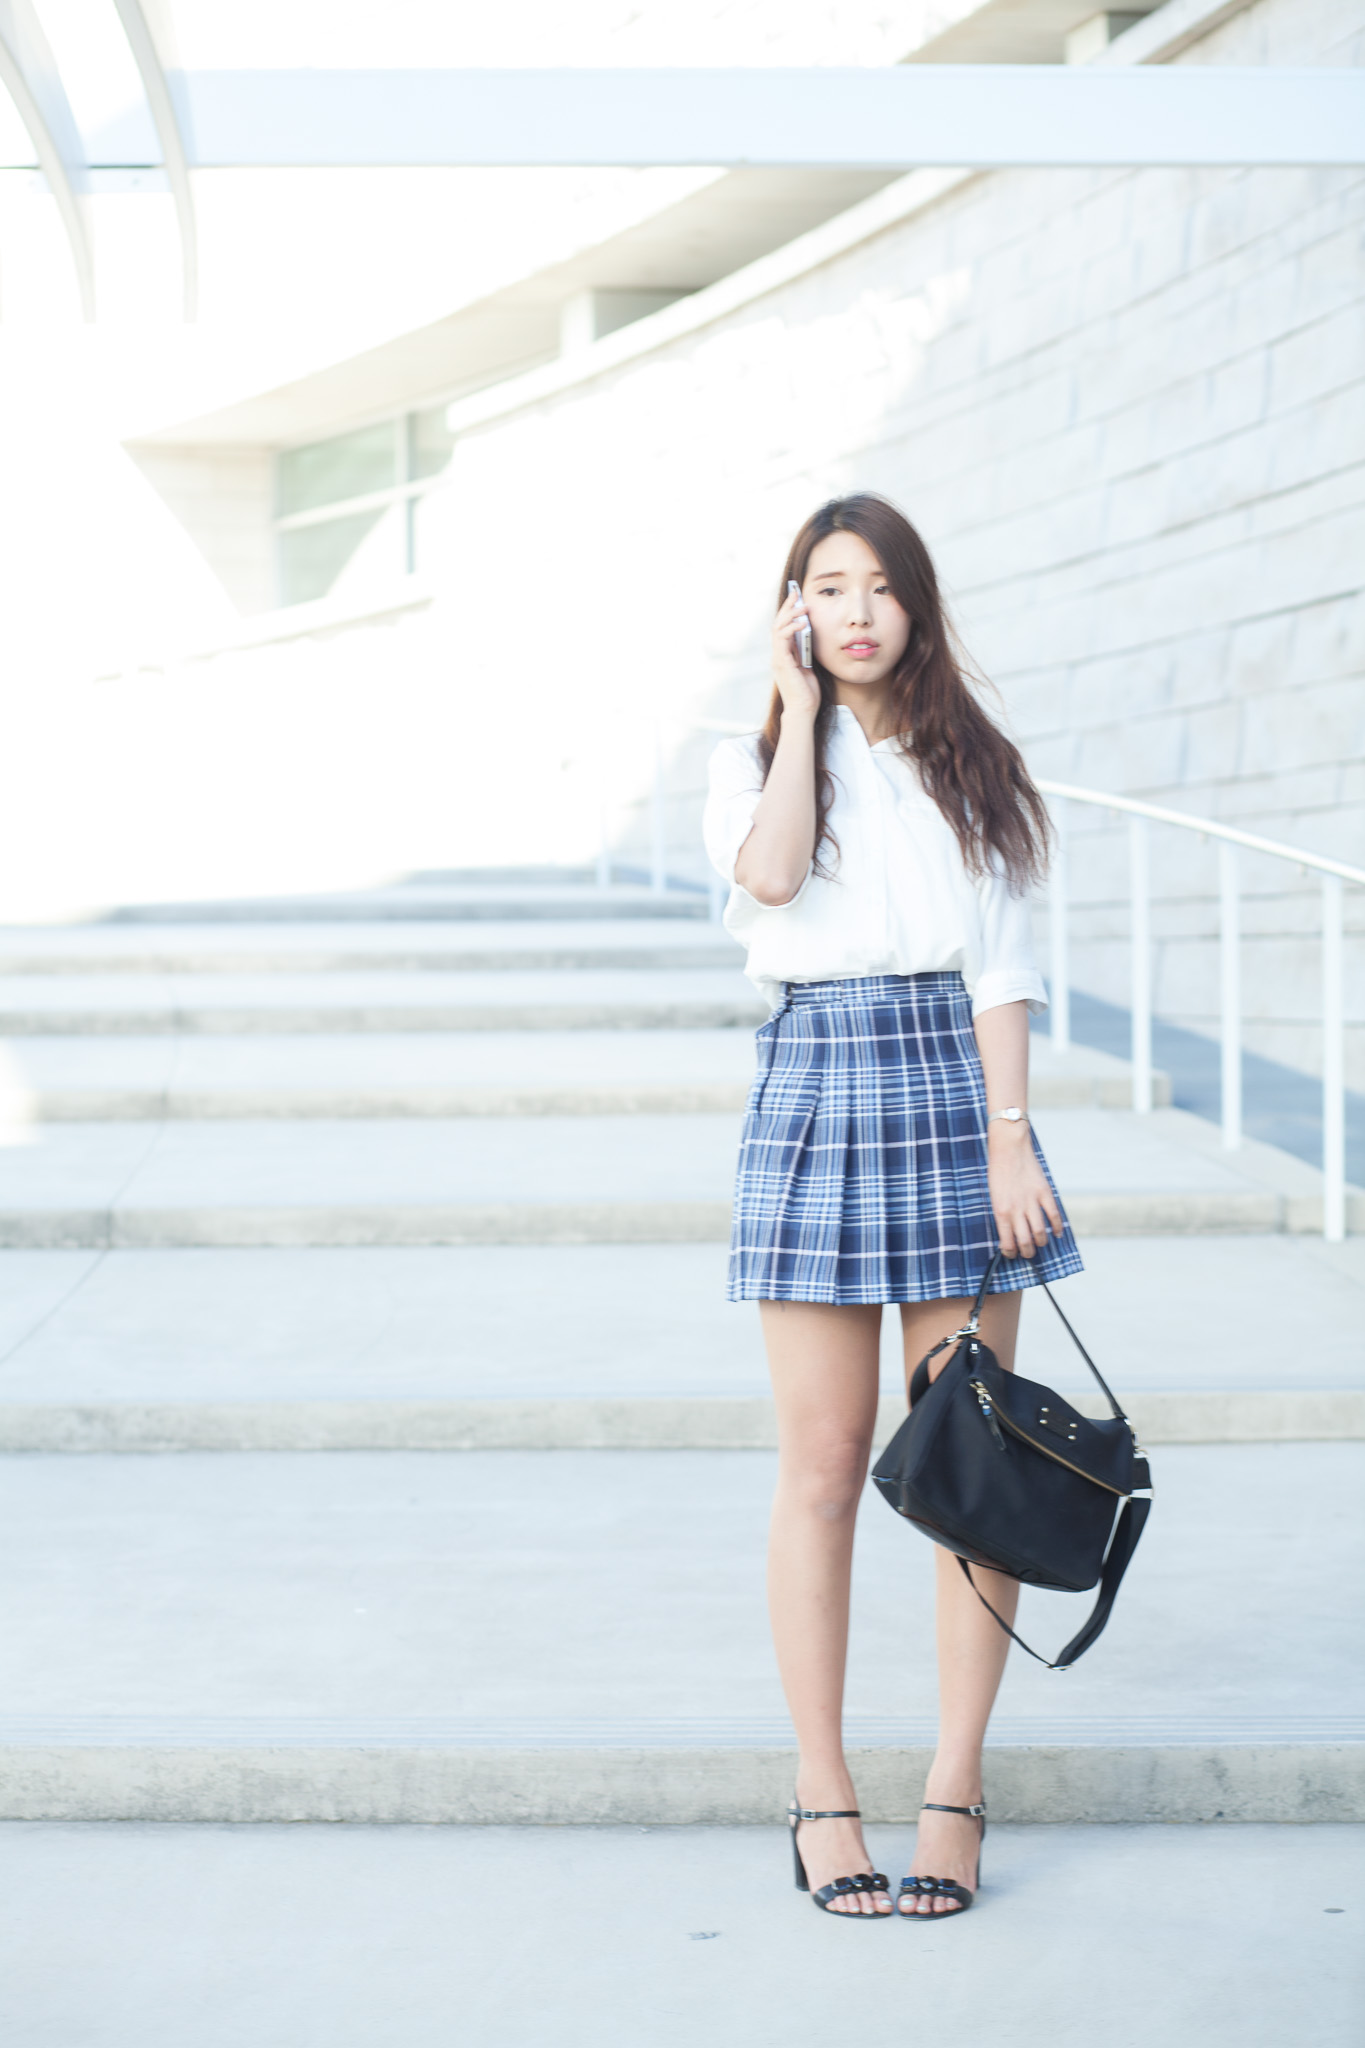 Teen fashions asian teen street — 2